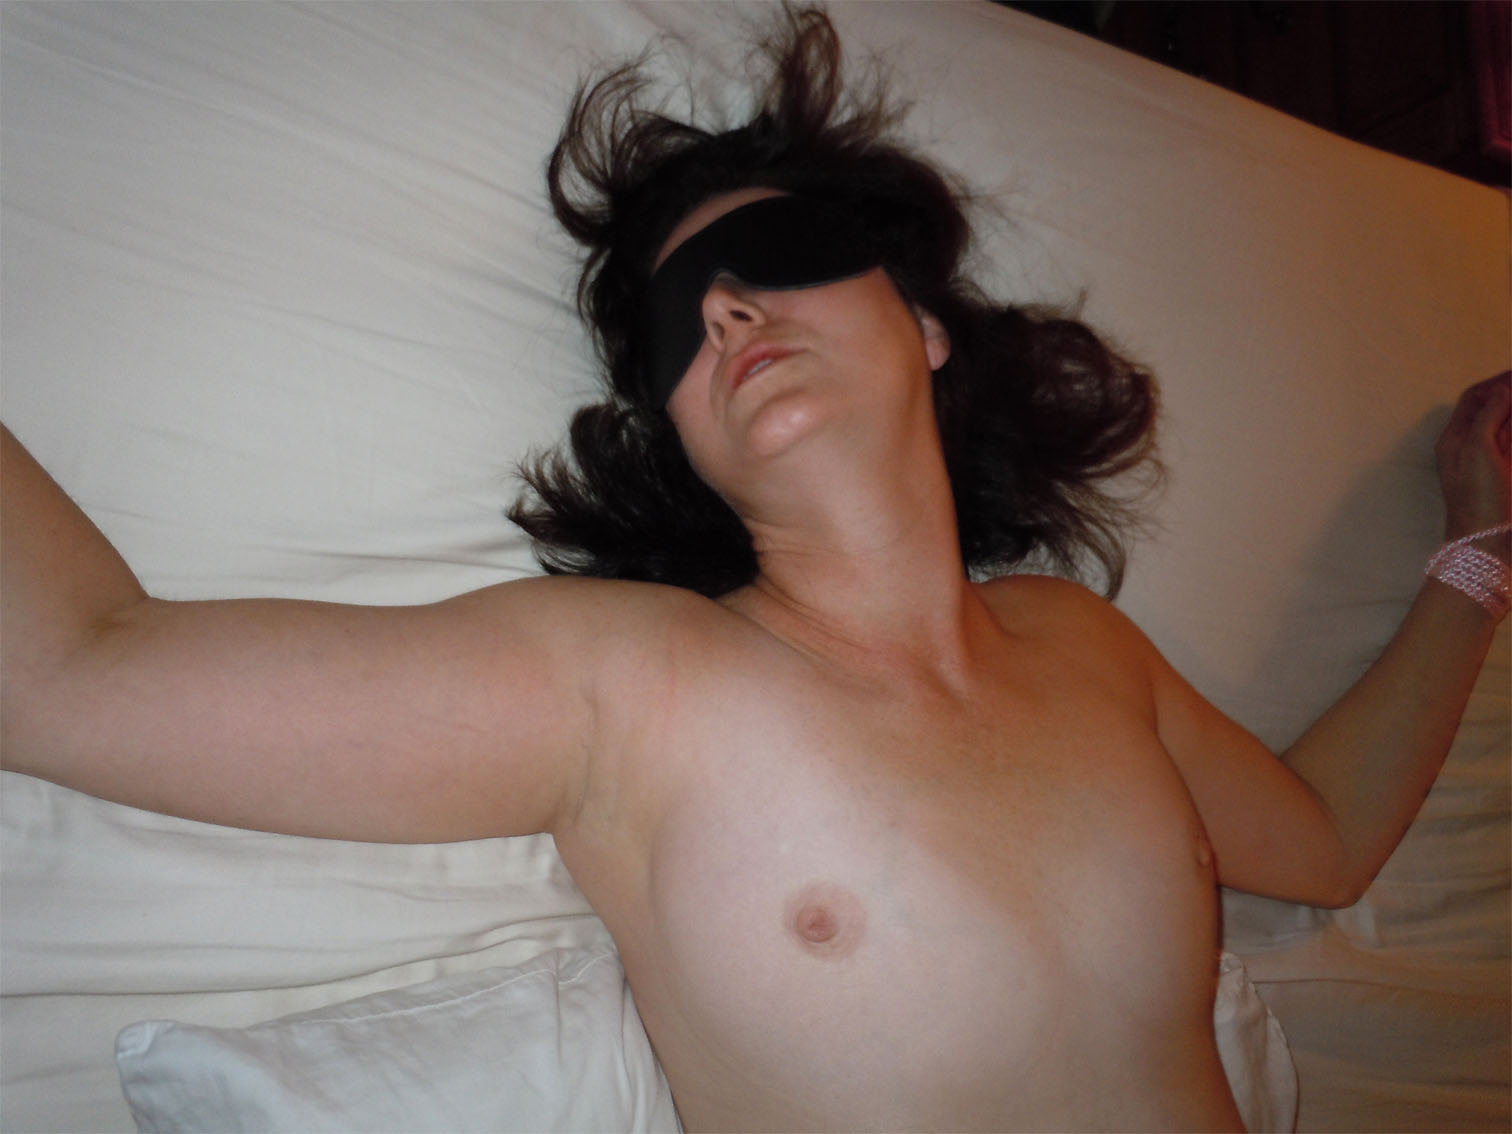 Woman blindfolded nude